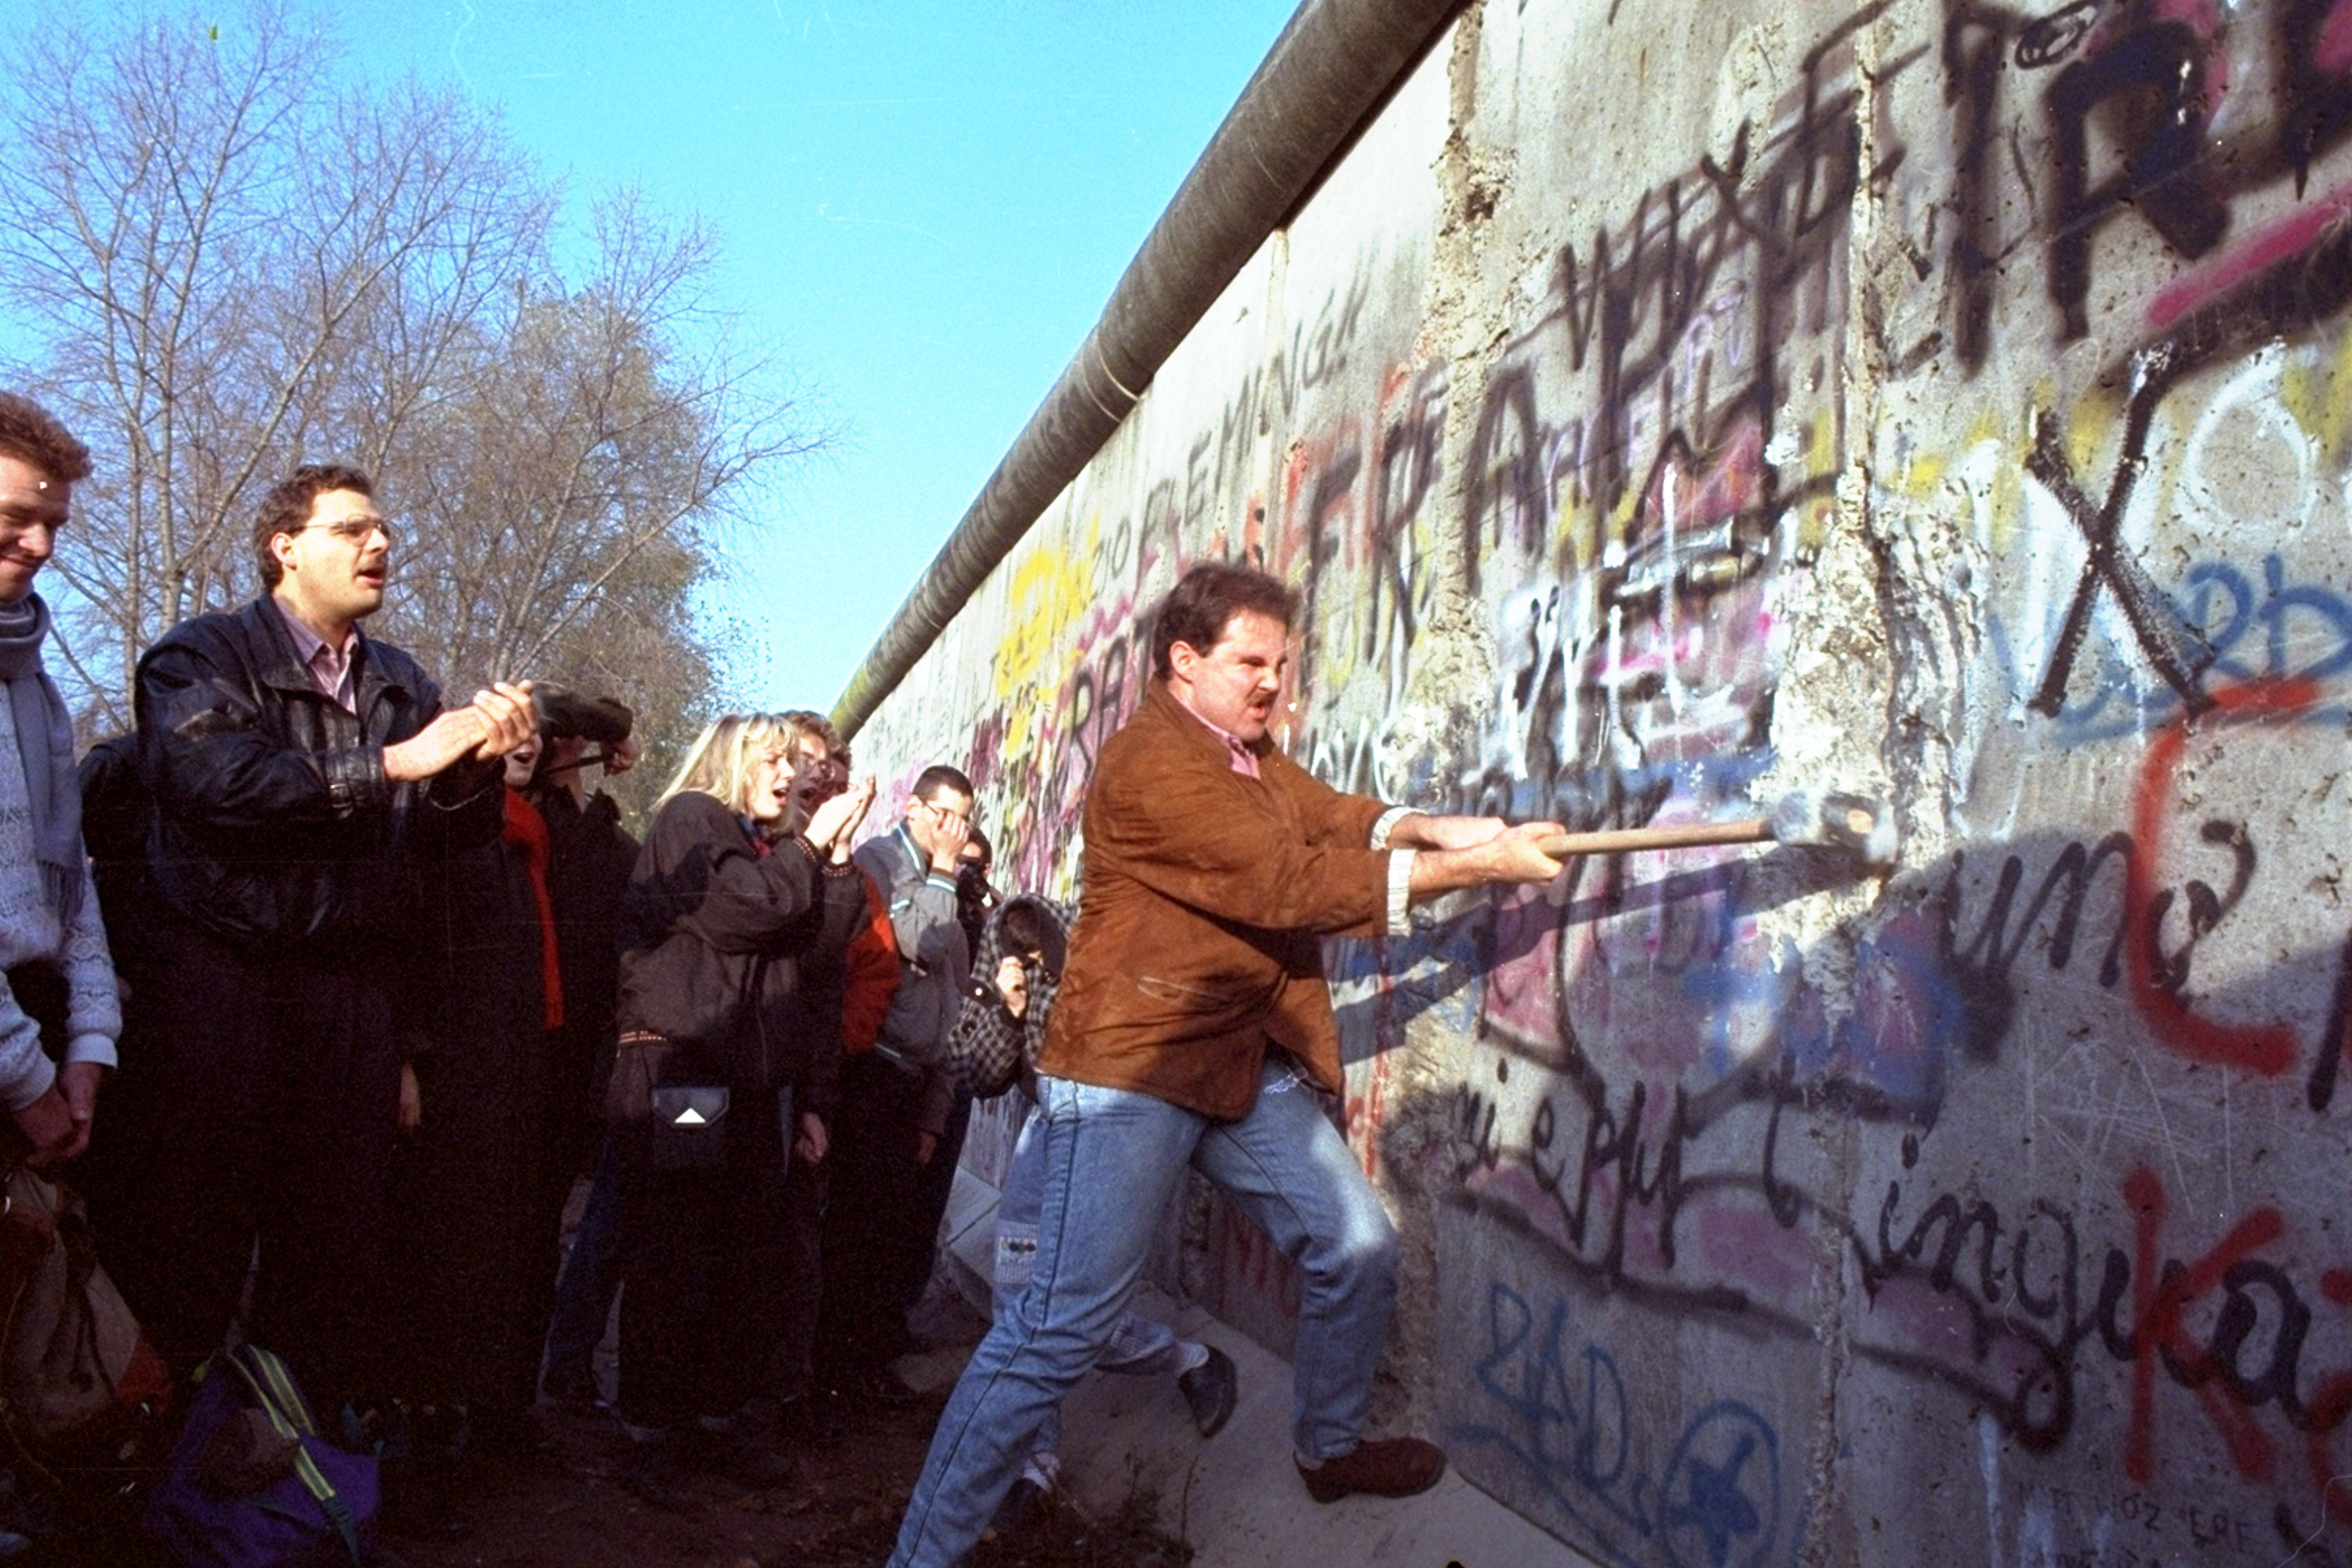 fall of berlin wall essay After ww2 ended berlin was divided into four the fall of the berlin wall symbolized a key turning event in diplomatic and government powers as it.